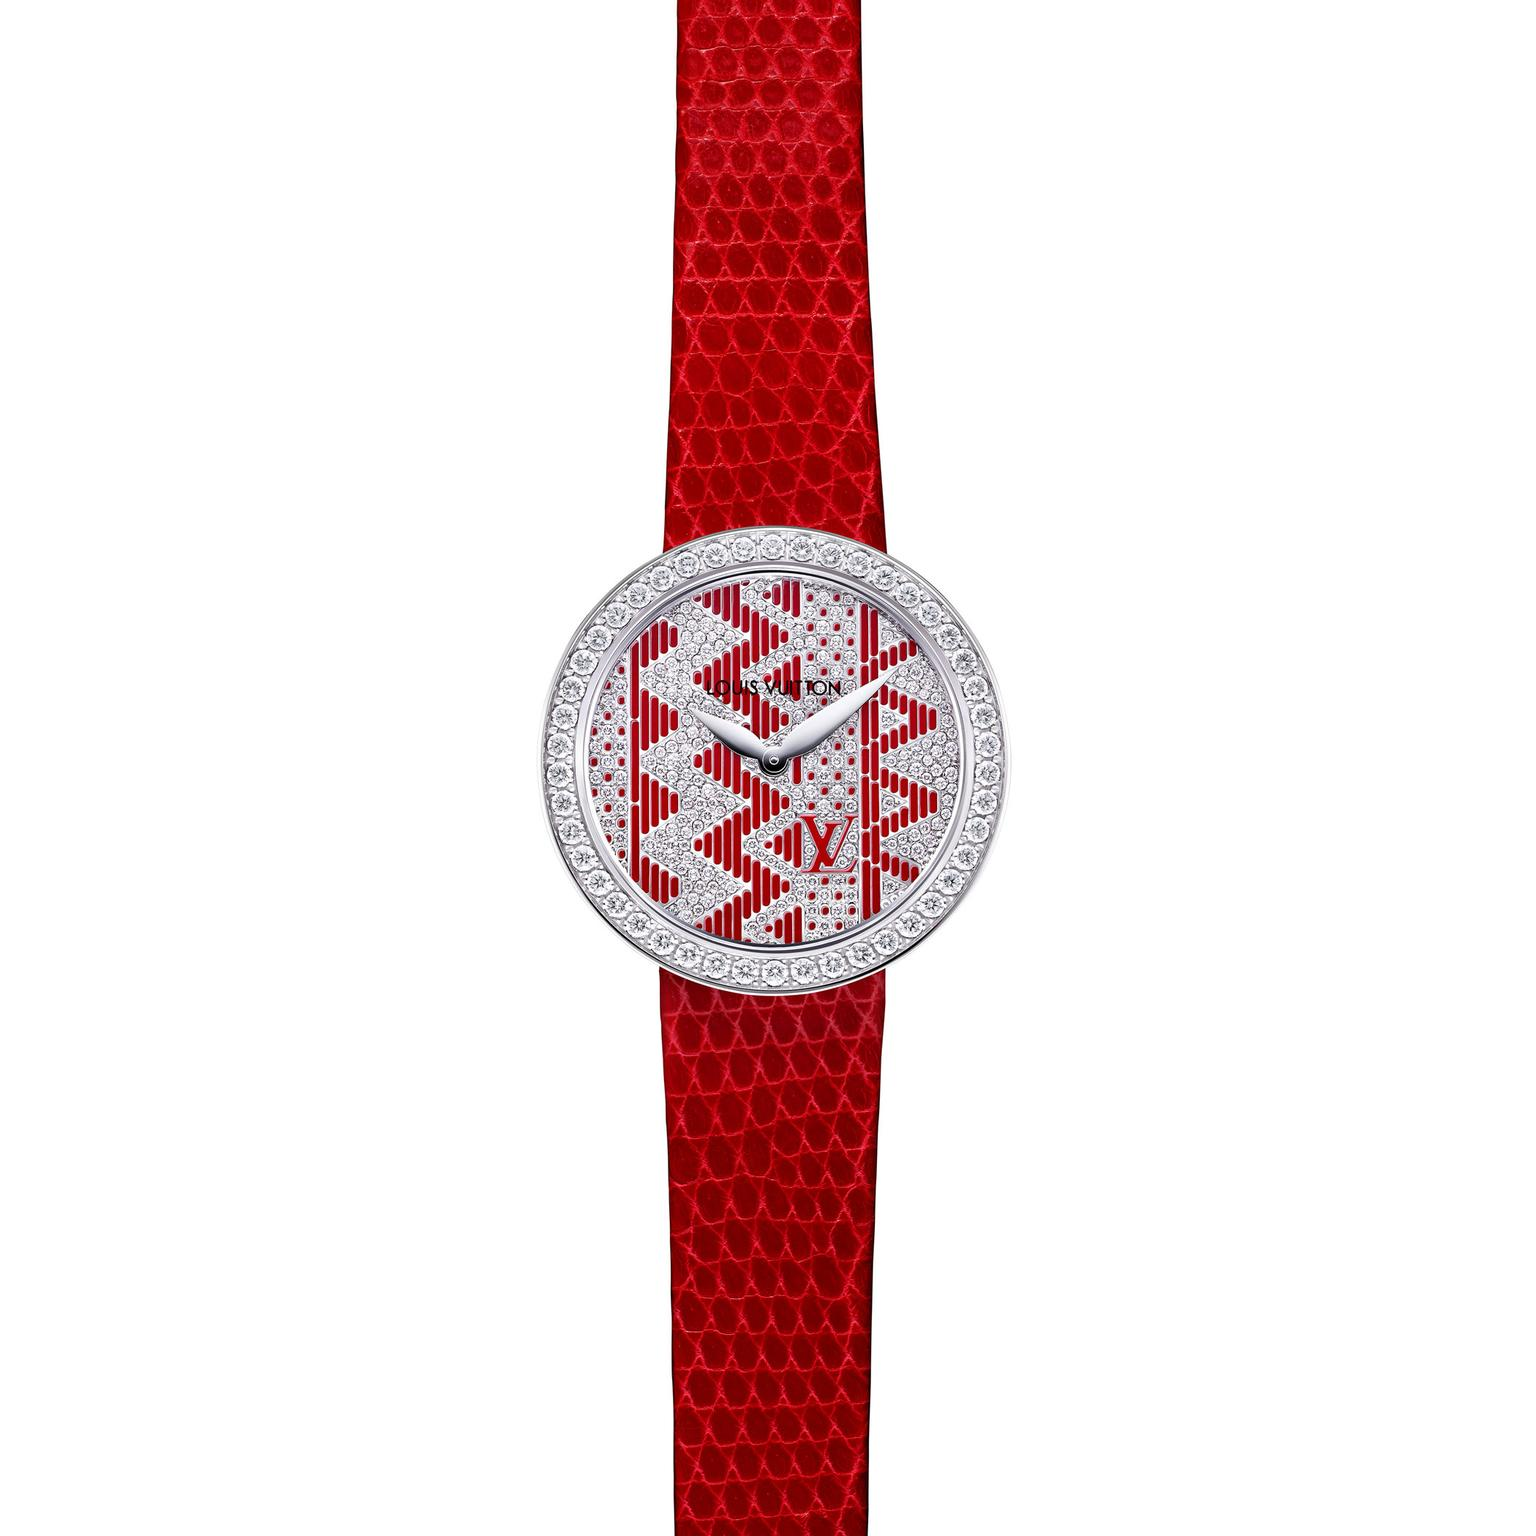 Louis Vuitton Joaillerie Chevron ladies watch in red_zoom